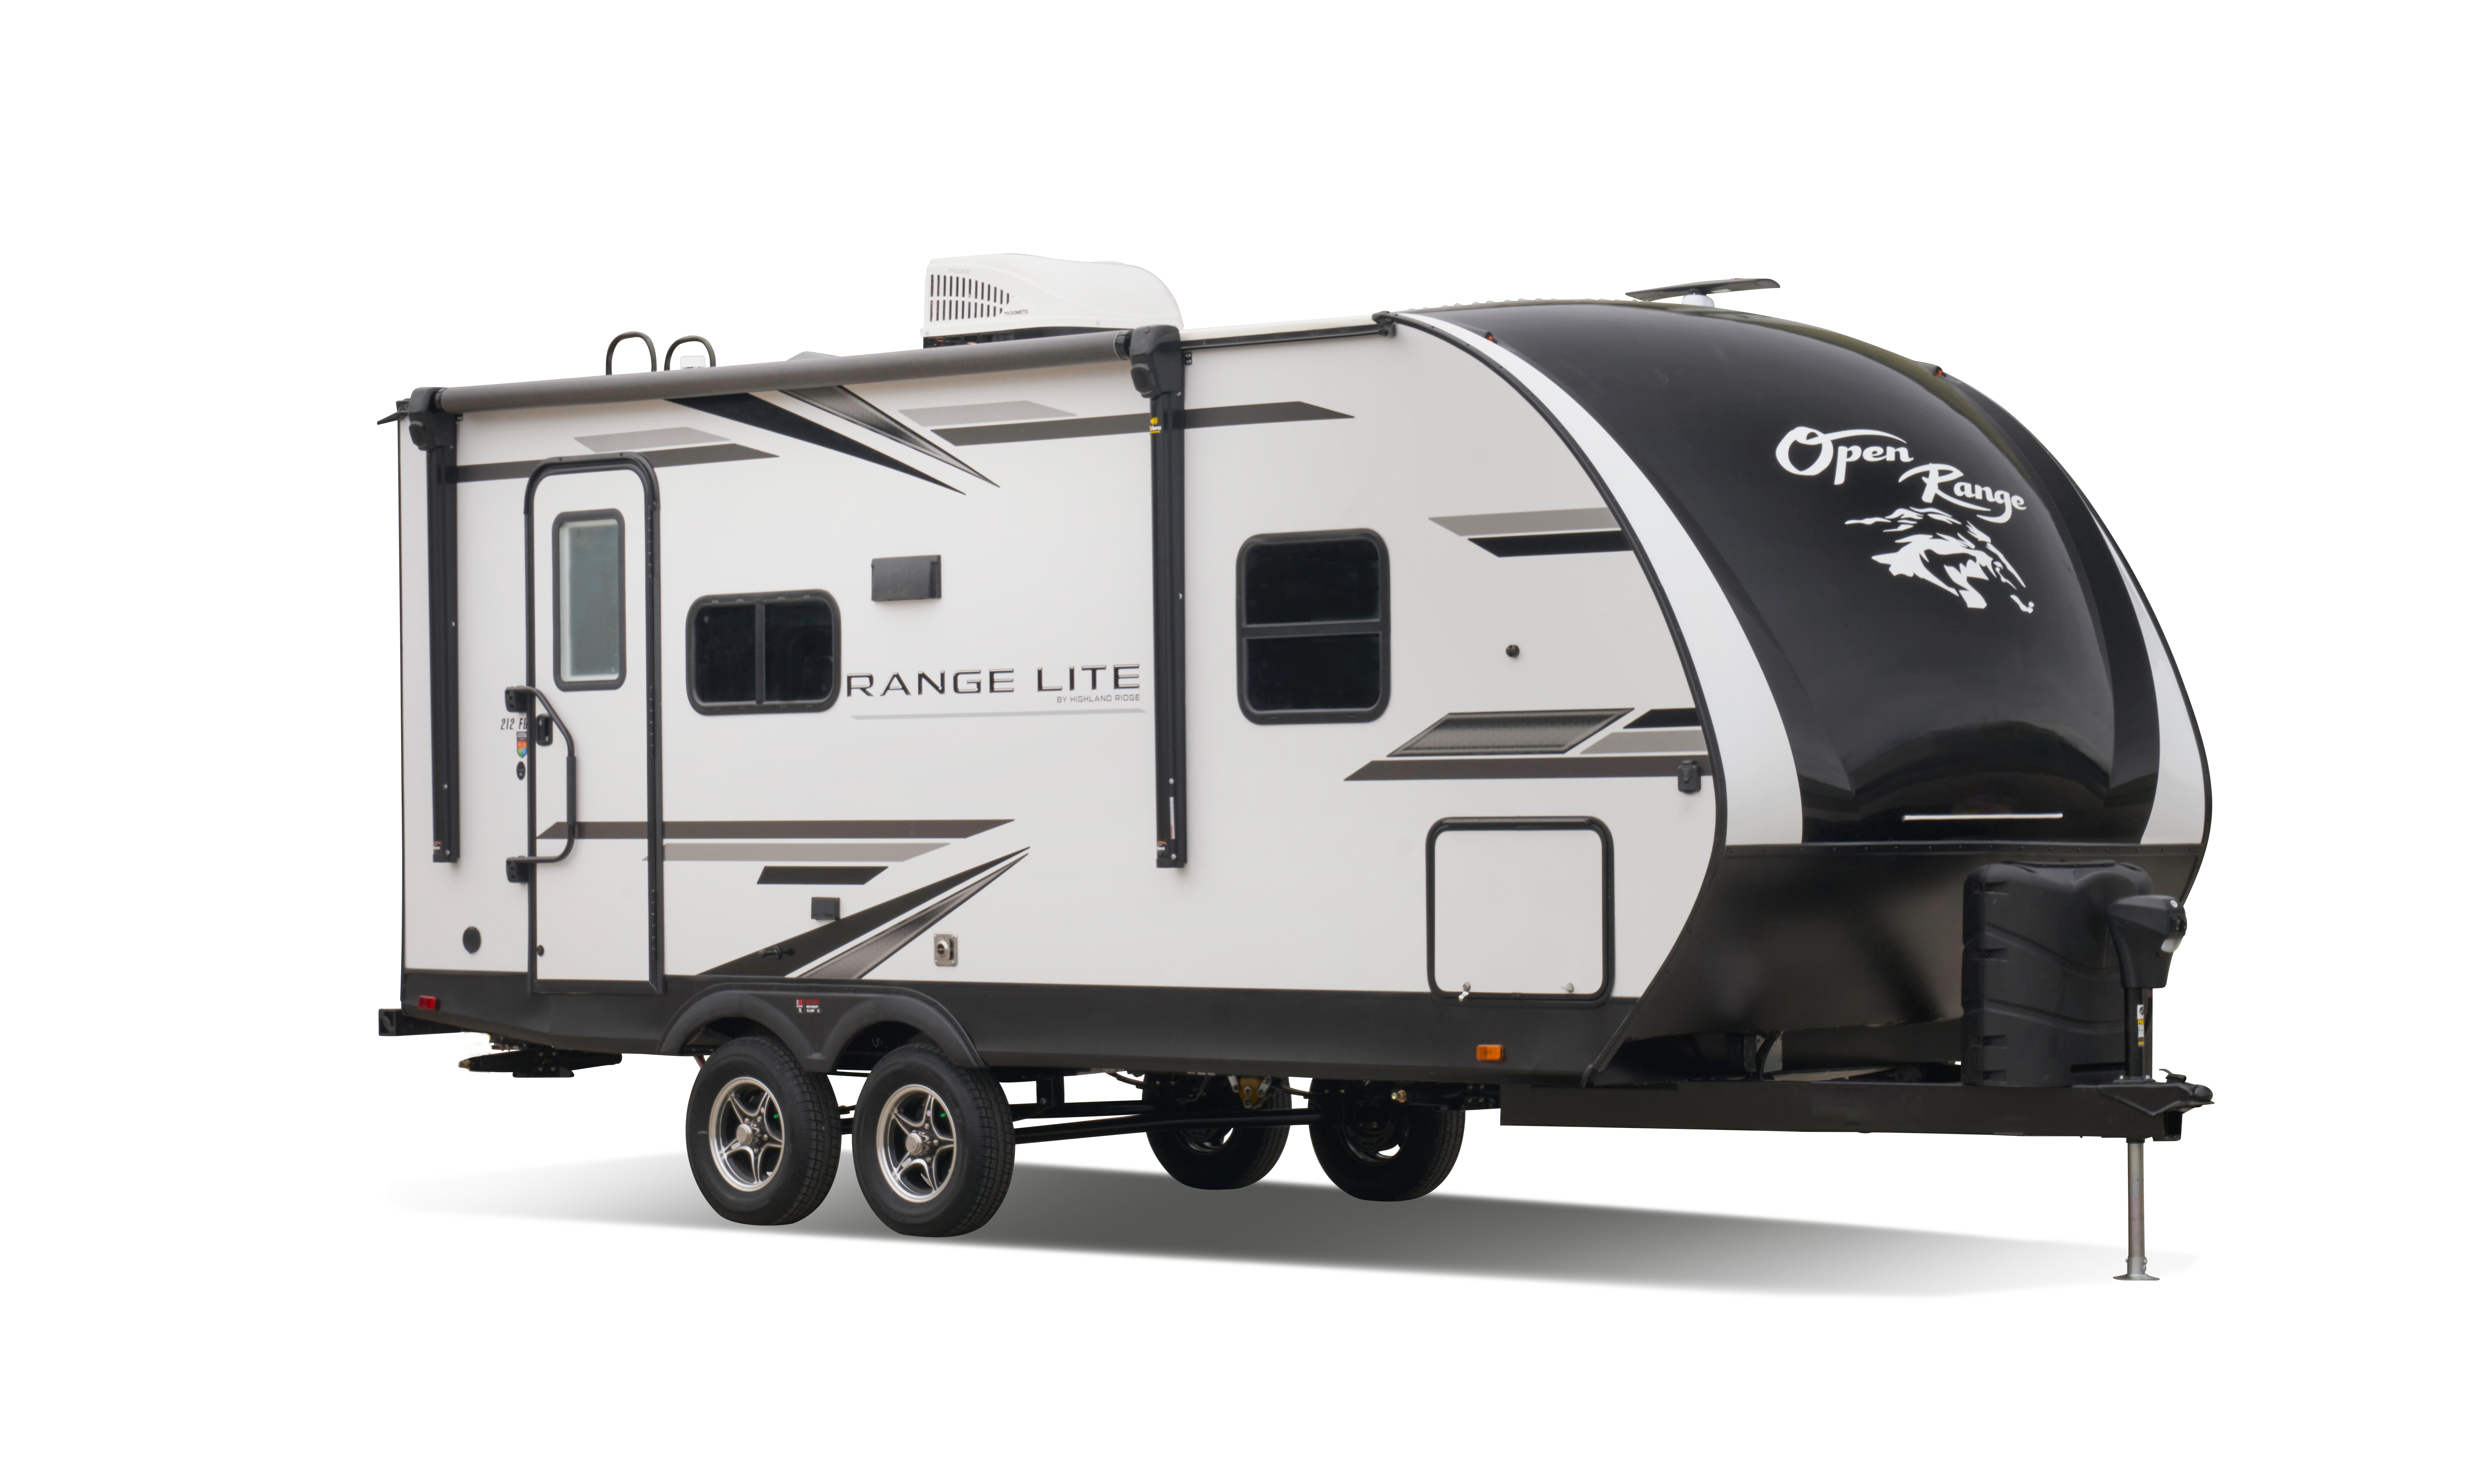 2021 Range Lite Travel Trailer